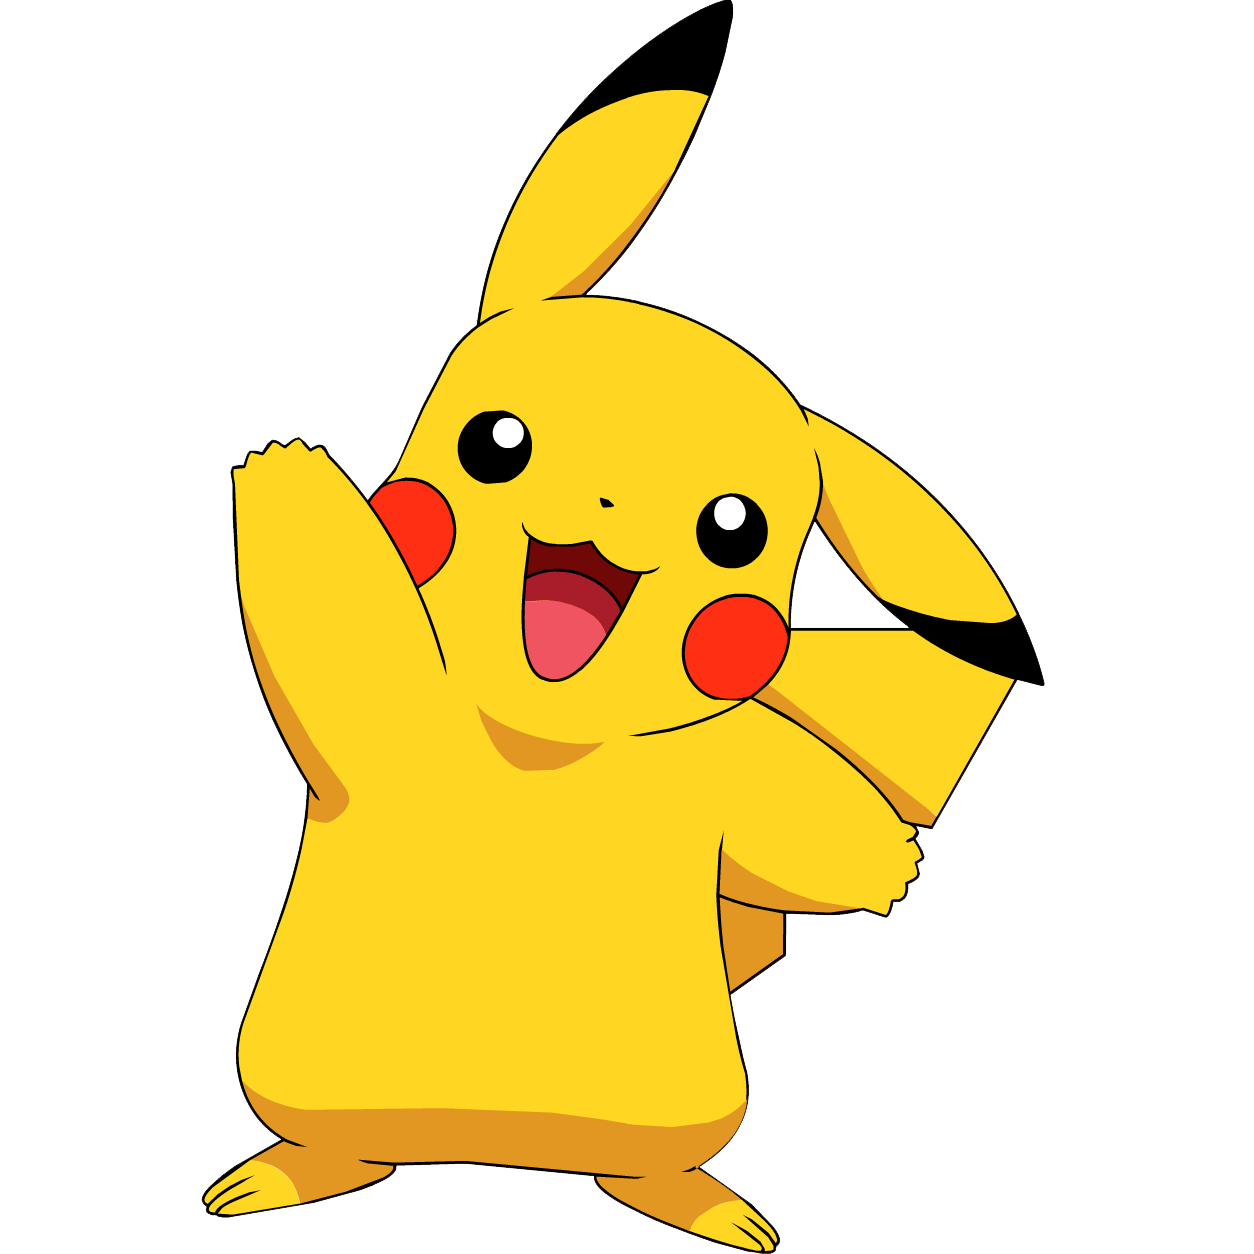 Pikachu Transparent Background